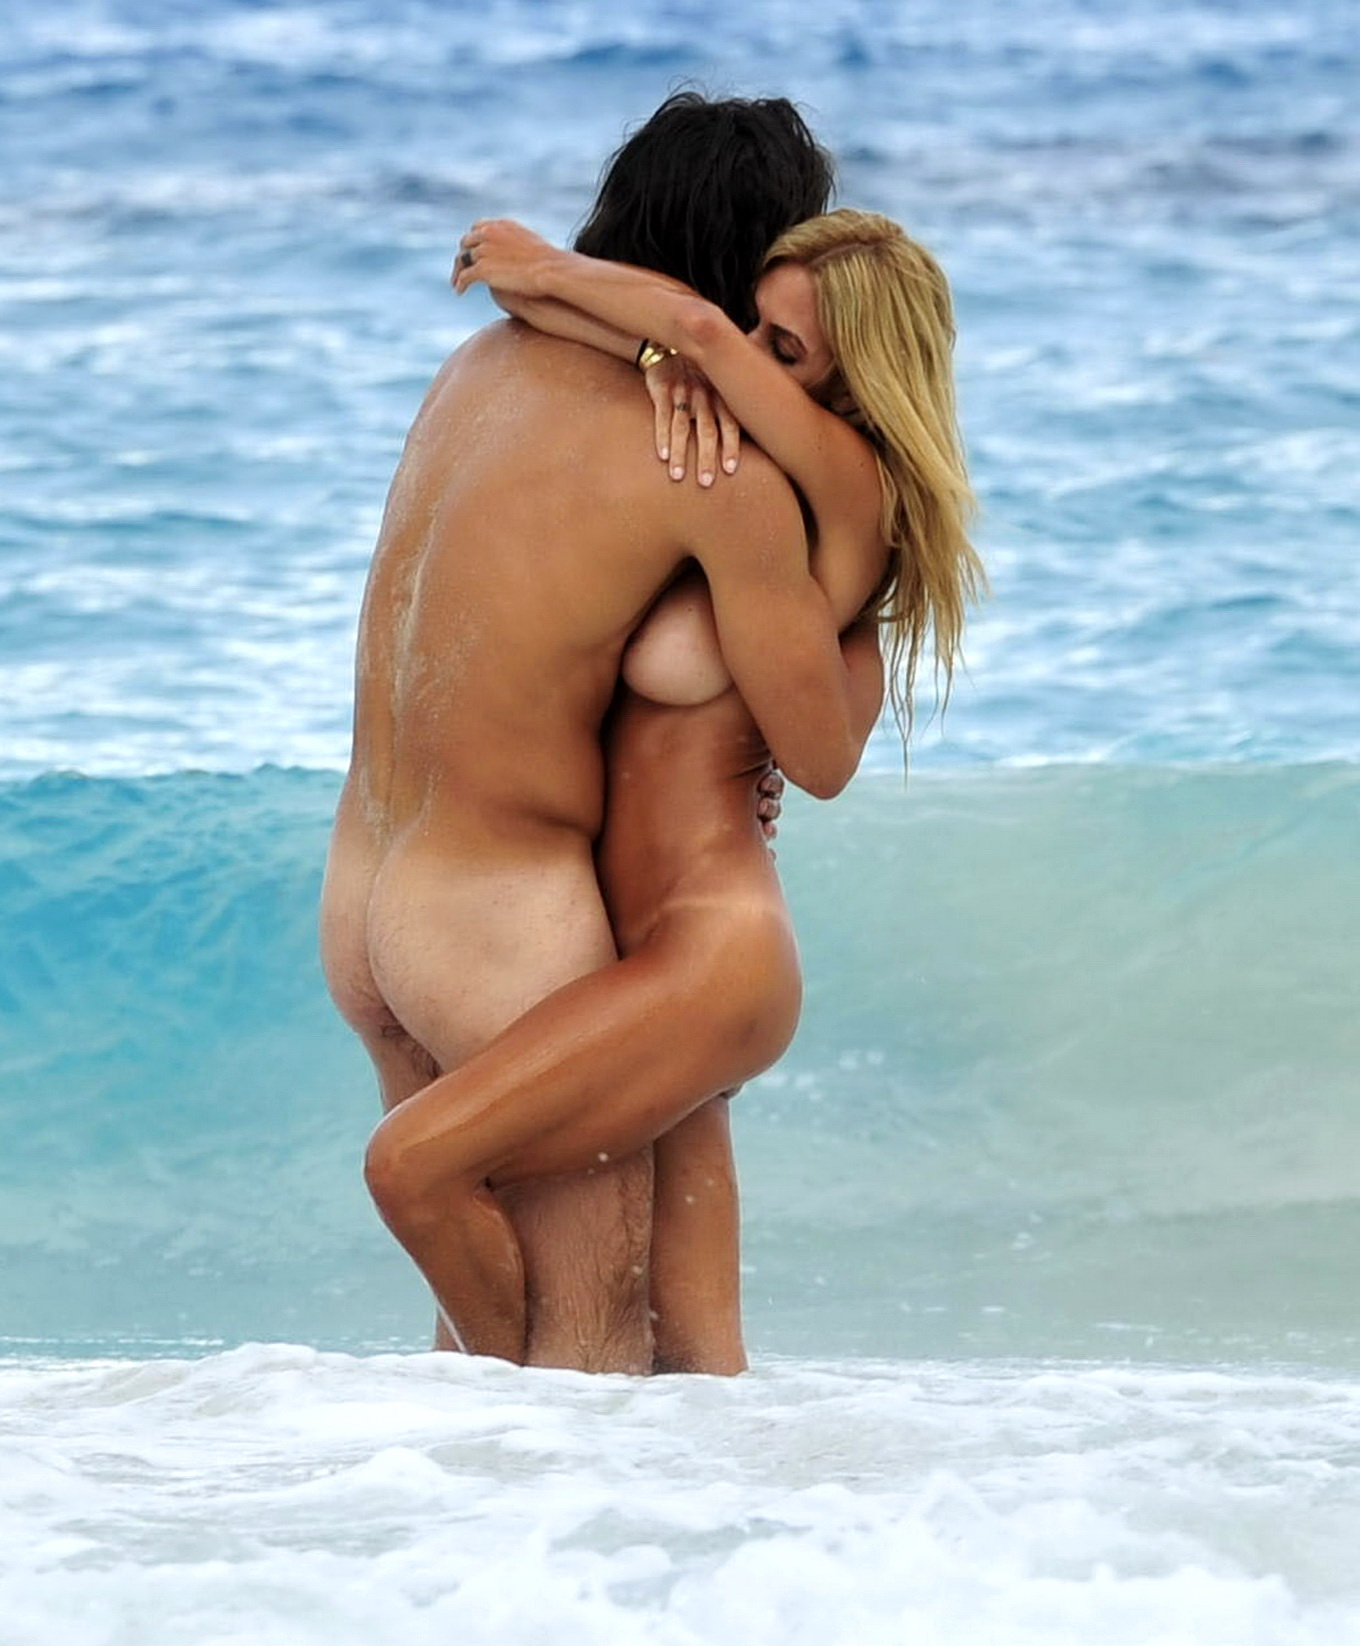 Shauna Sand caught sucking off and fucking her boyfriend on a beach in ...: www.celeb-for-free.com/pics/celeb3437/shauna_sand_photo_starcelebs...